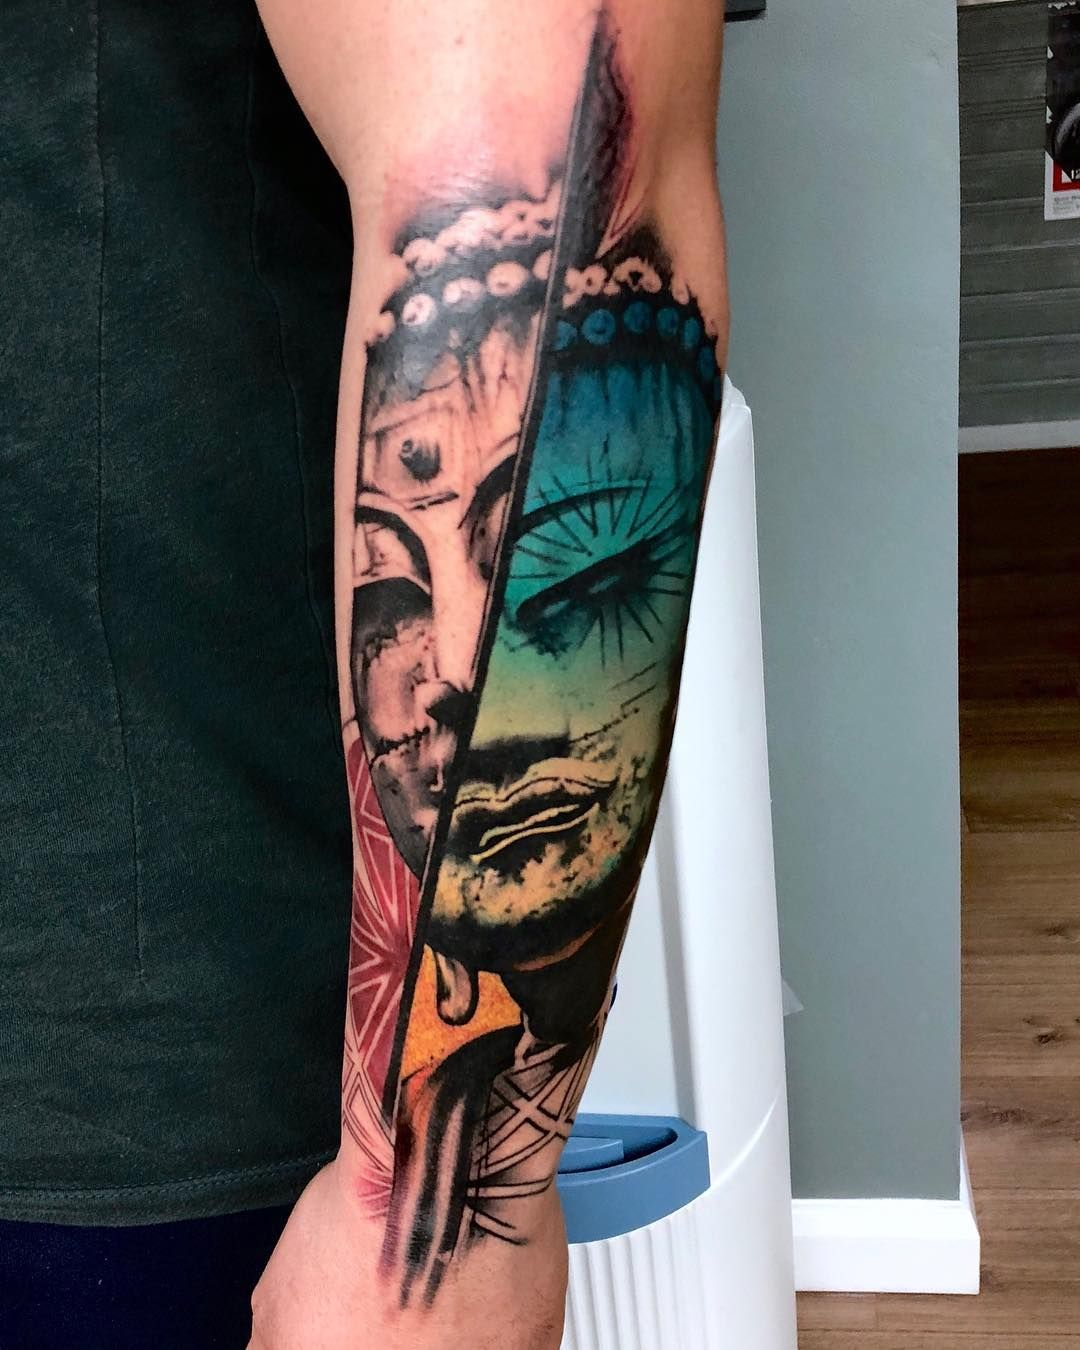 Abstract Portrait Tattoo By Rich Harris Incredible Tattoos Different Styles Of Tattoos Abstract Tattoo